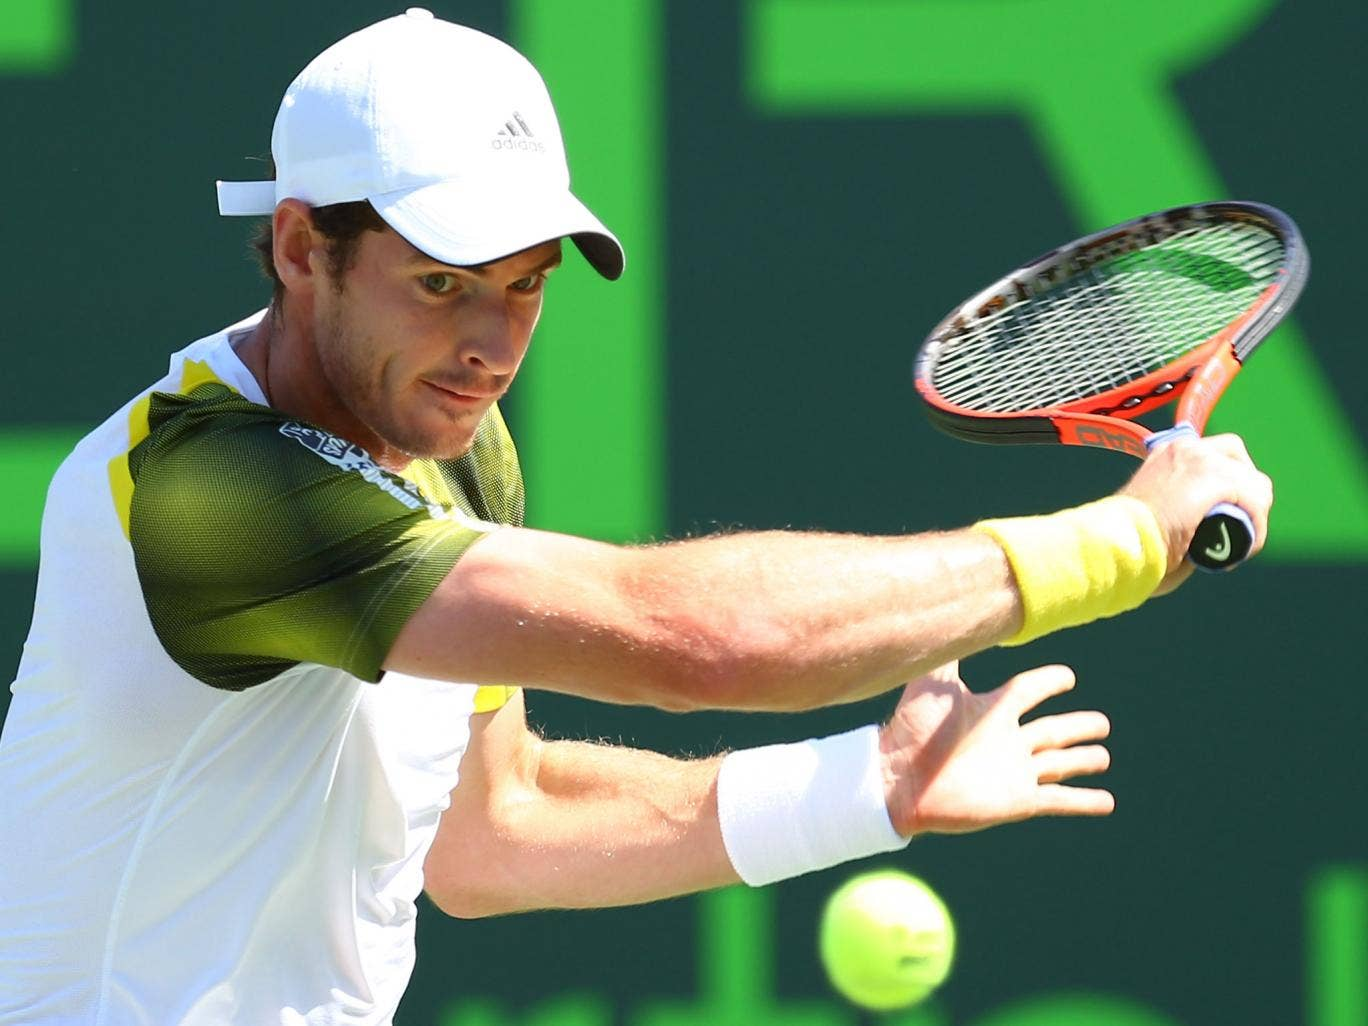 Andy Murray beat Marin Cilic in just under two hours